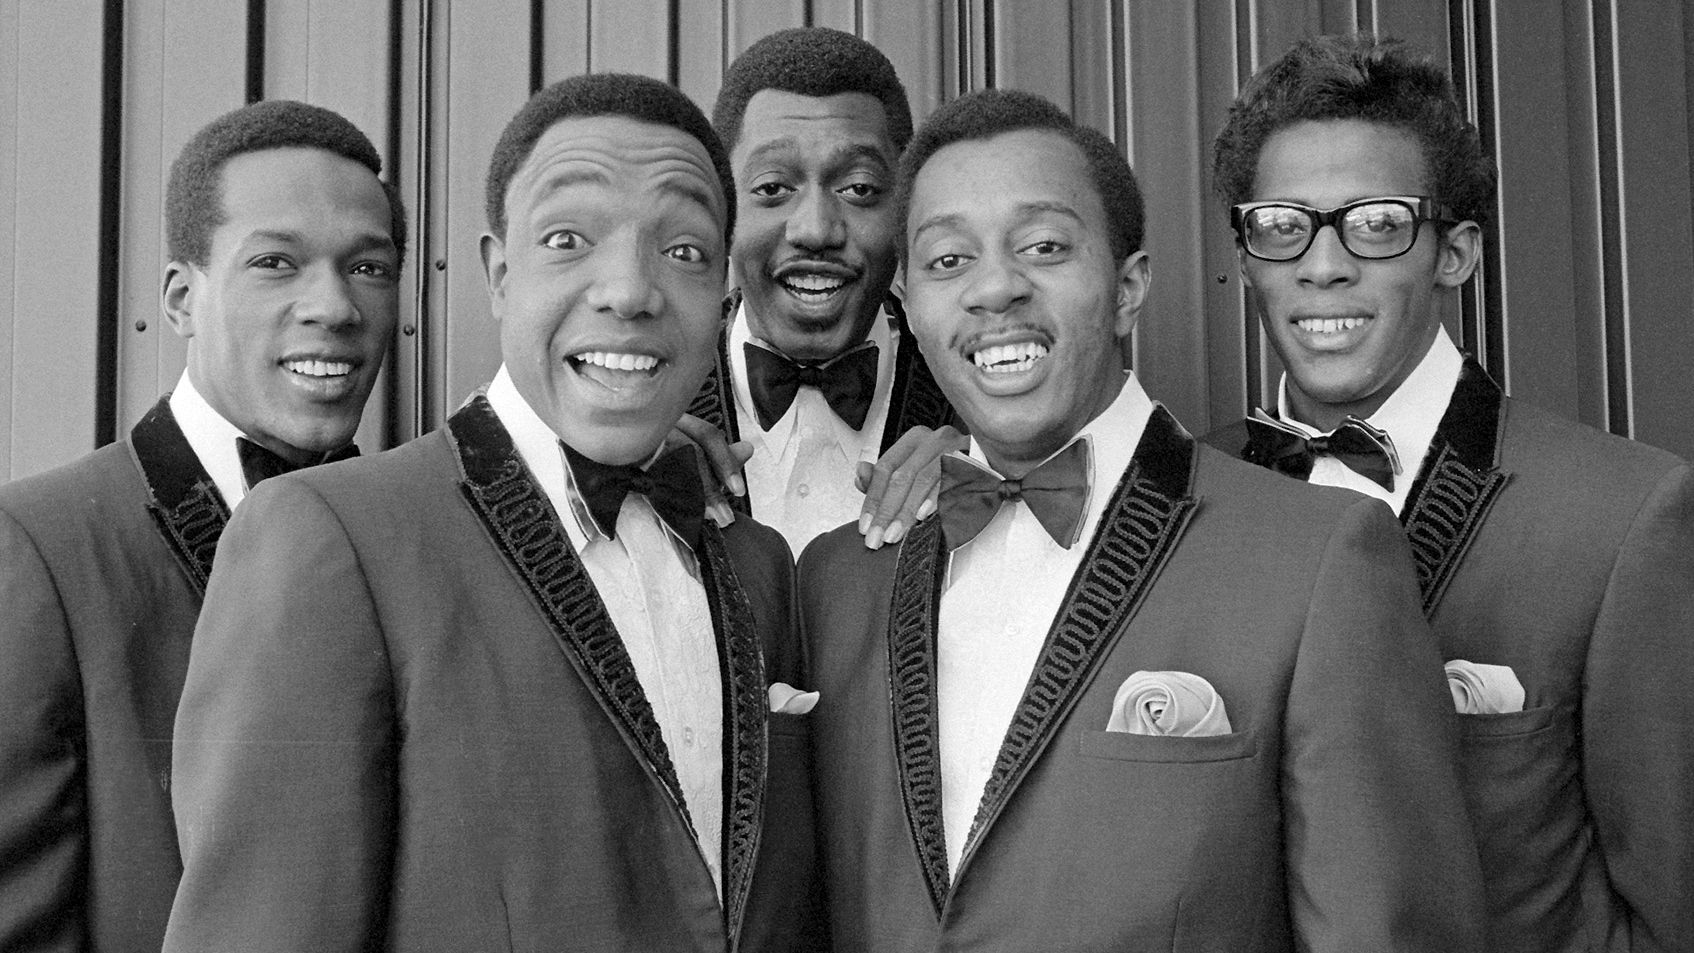 102313-national-the-temptations-band-group